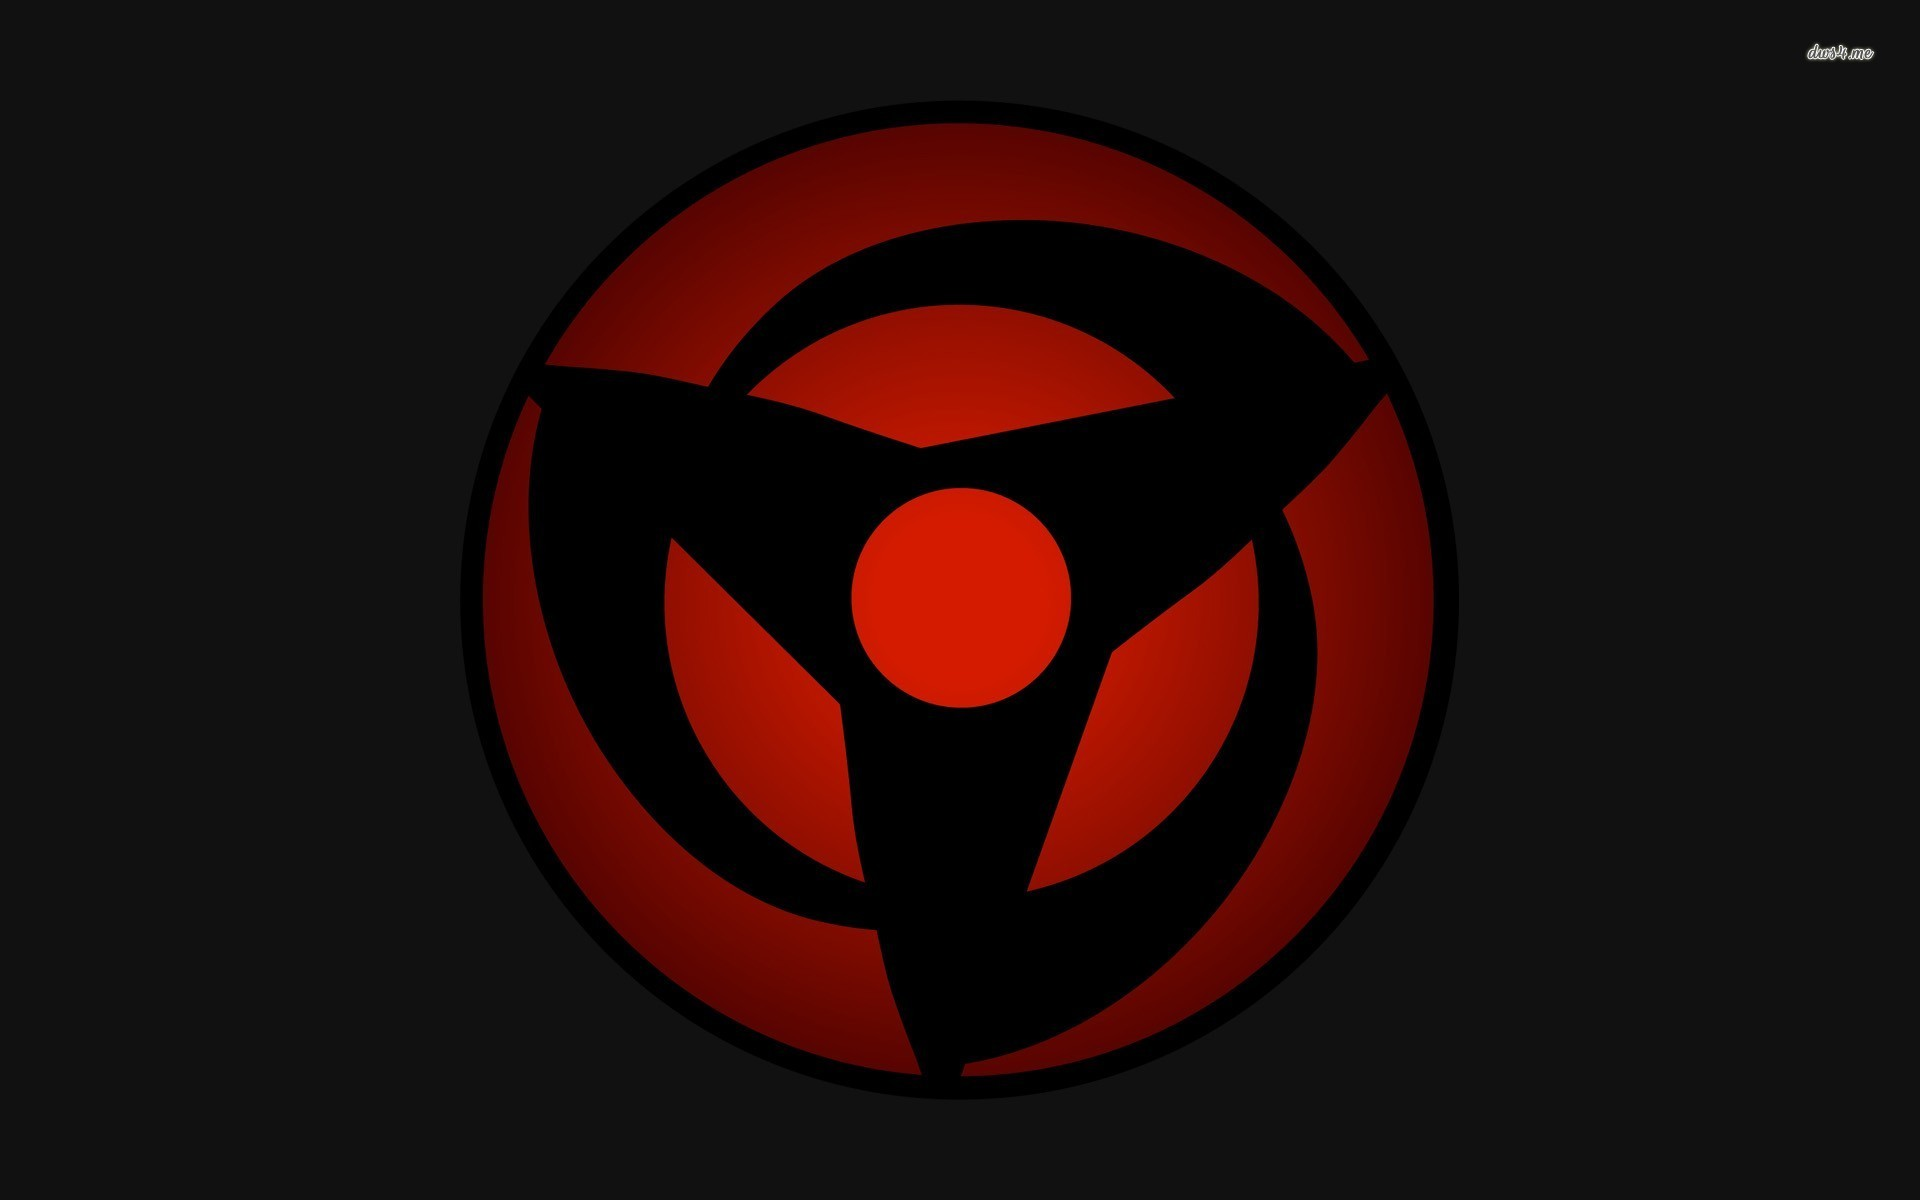 Sharingan Wallpaper Sharingan wallpapers 1920x1200